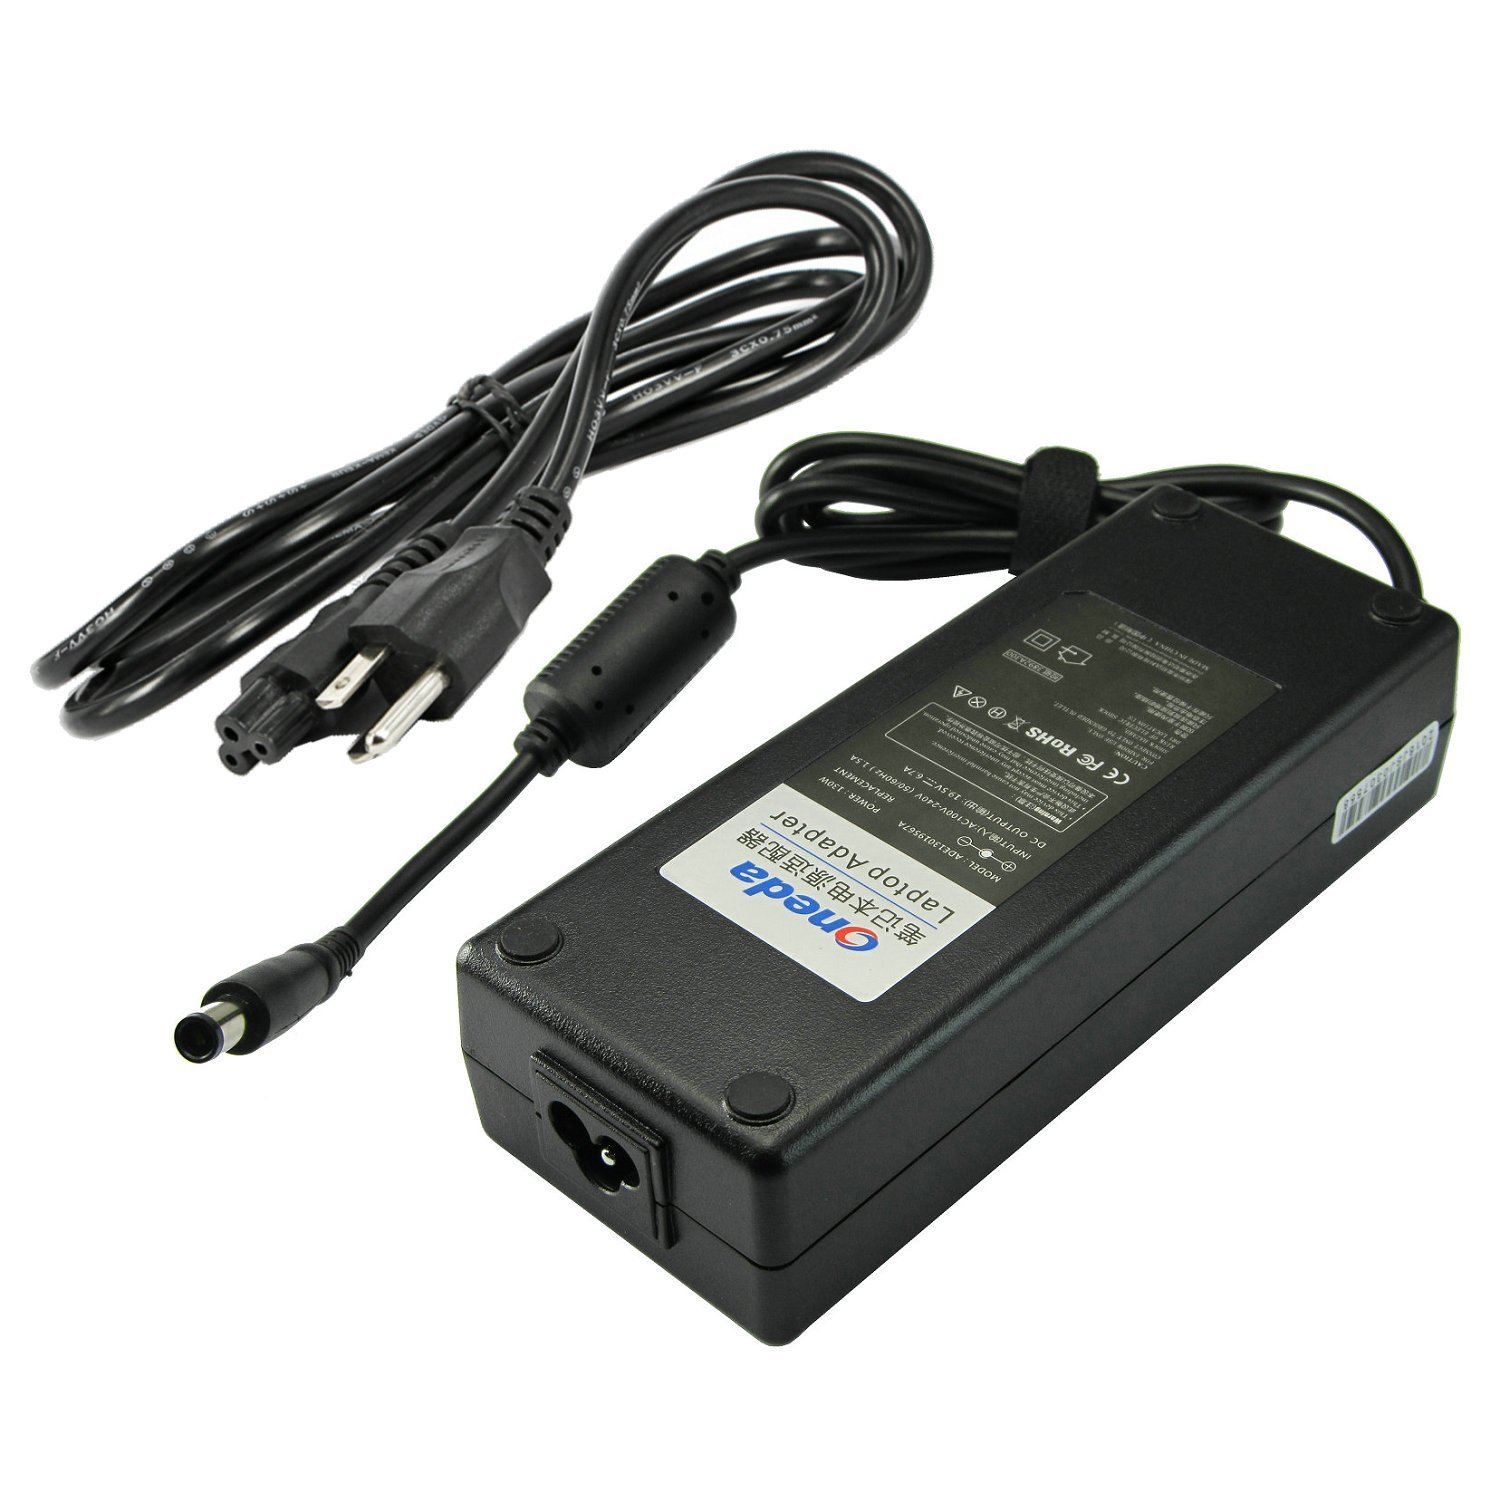 Oneda 130W 19.5V 6.7A AC Power Adapter Charger for Dell PA-4E PA-13 DA130PE1-00 LA130PM121 JU012 0JU012 CM161 OCM161 330-1829 330-1830 X408G D232H 0X408G 0D232H ADP-130DB B TC887 310-8275 Supply Cord